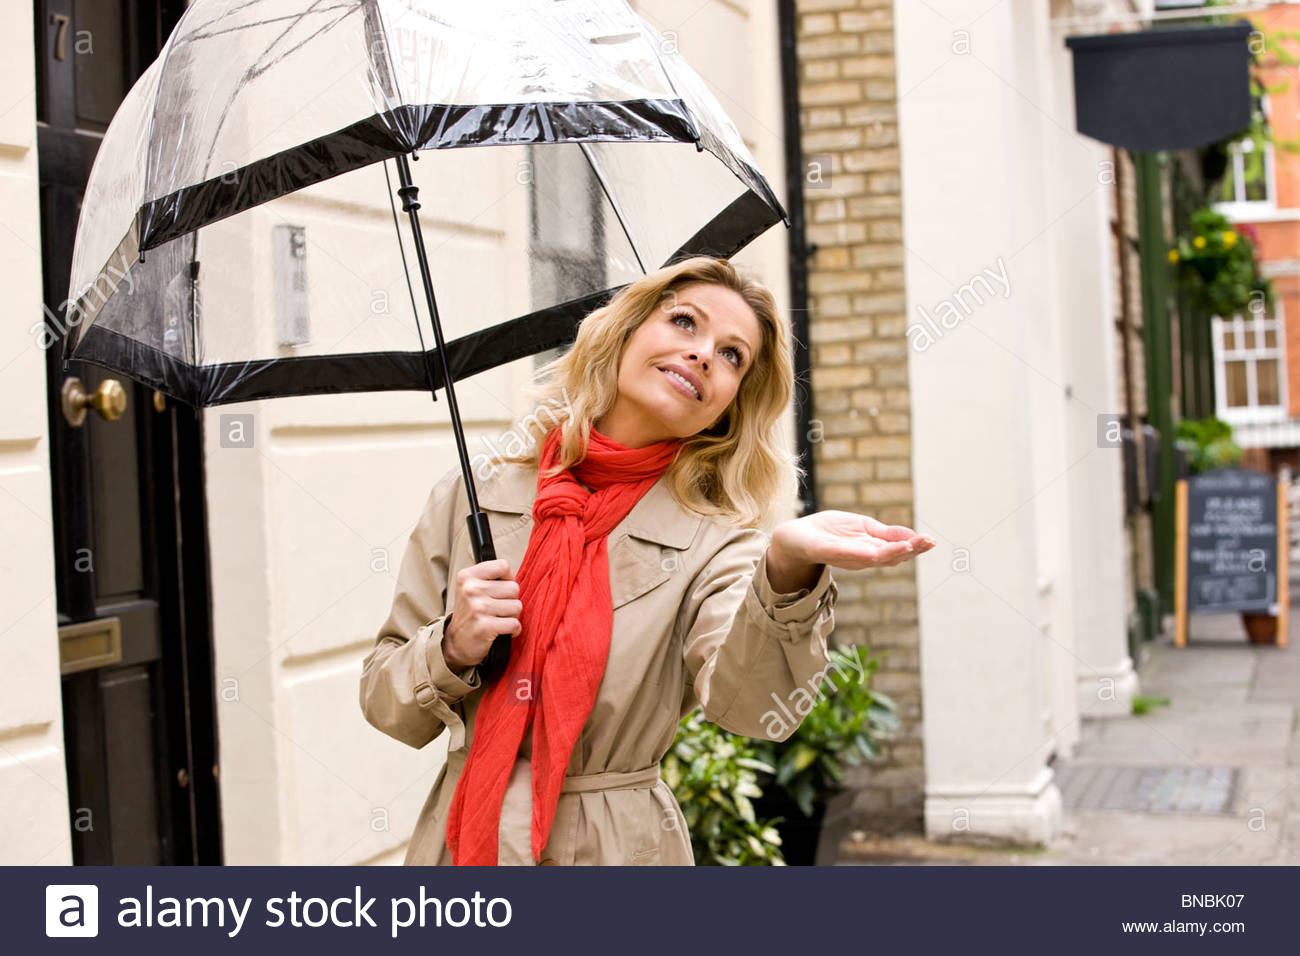 A mid adult woman holding an umbrella, checking for rain - Stock Image